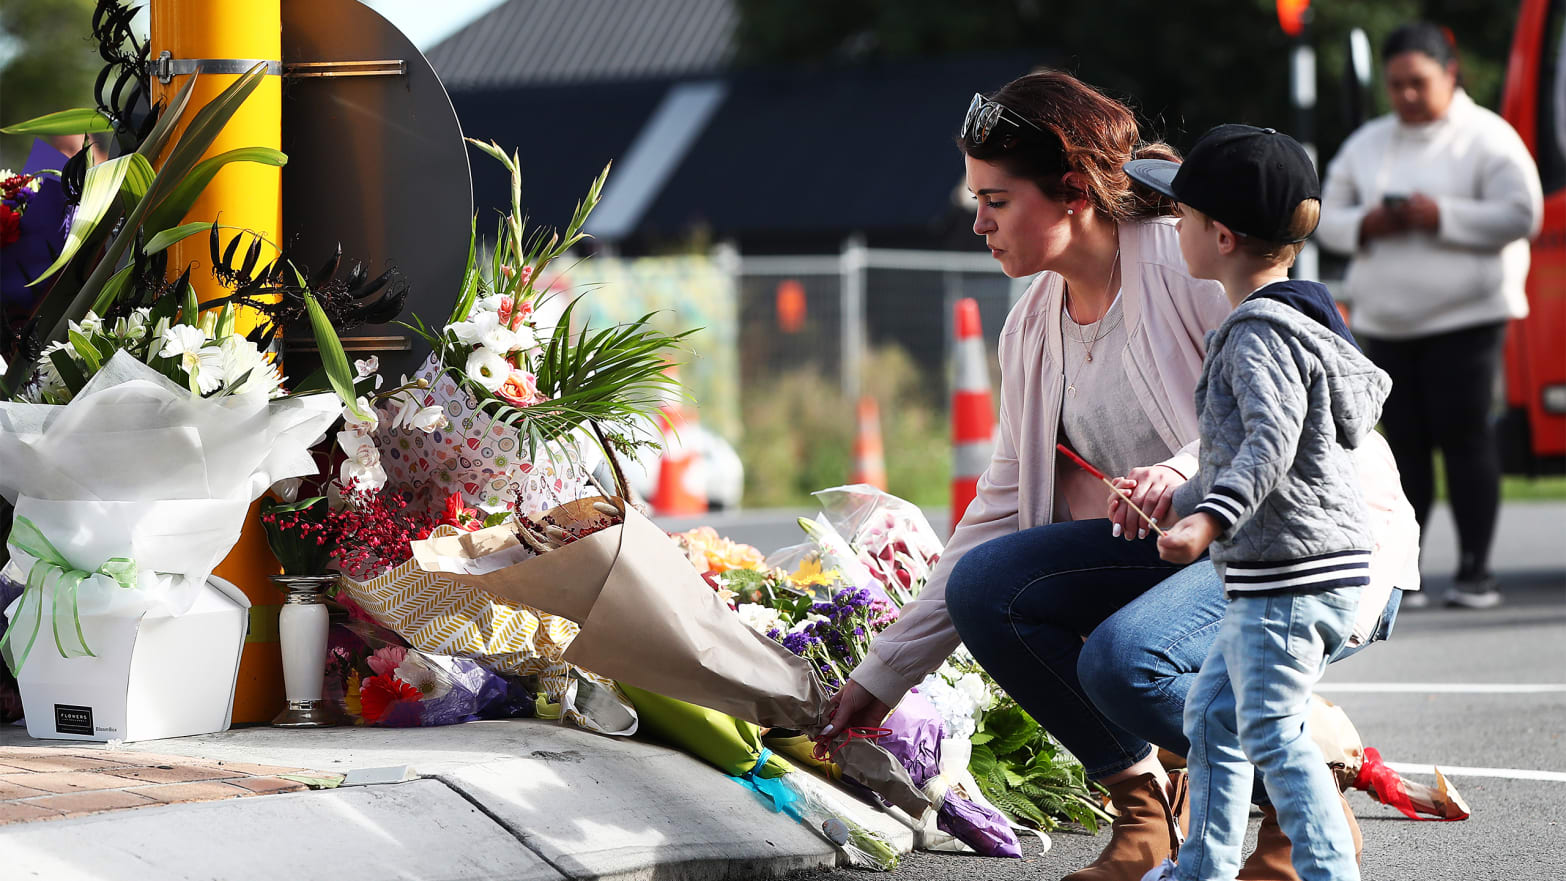 The New Zealand Mosque Massacre Blame Game Is Out of Control